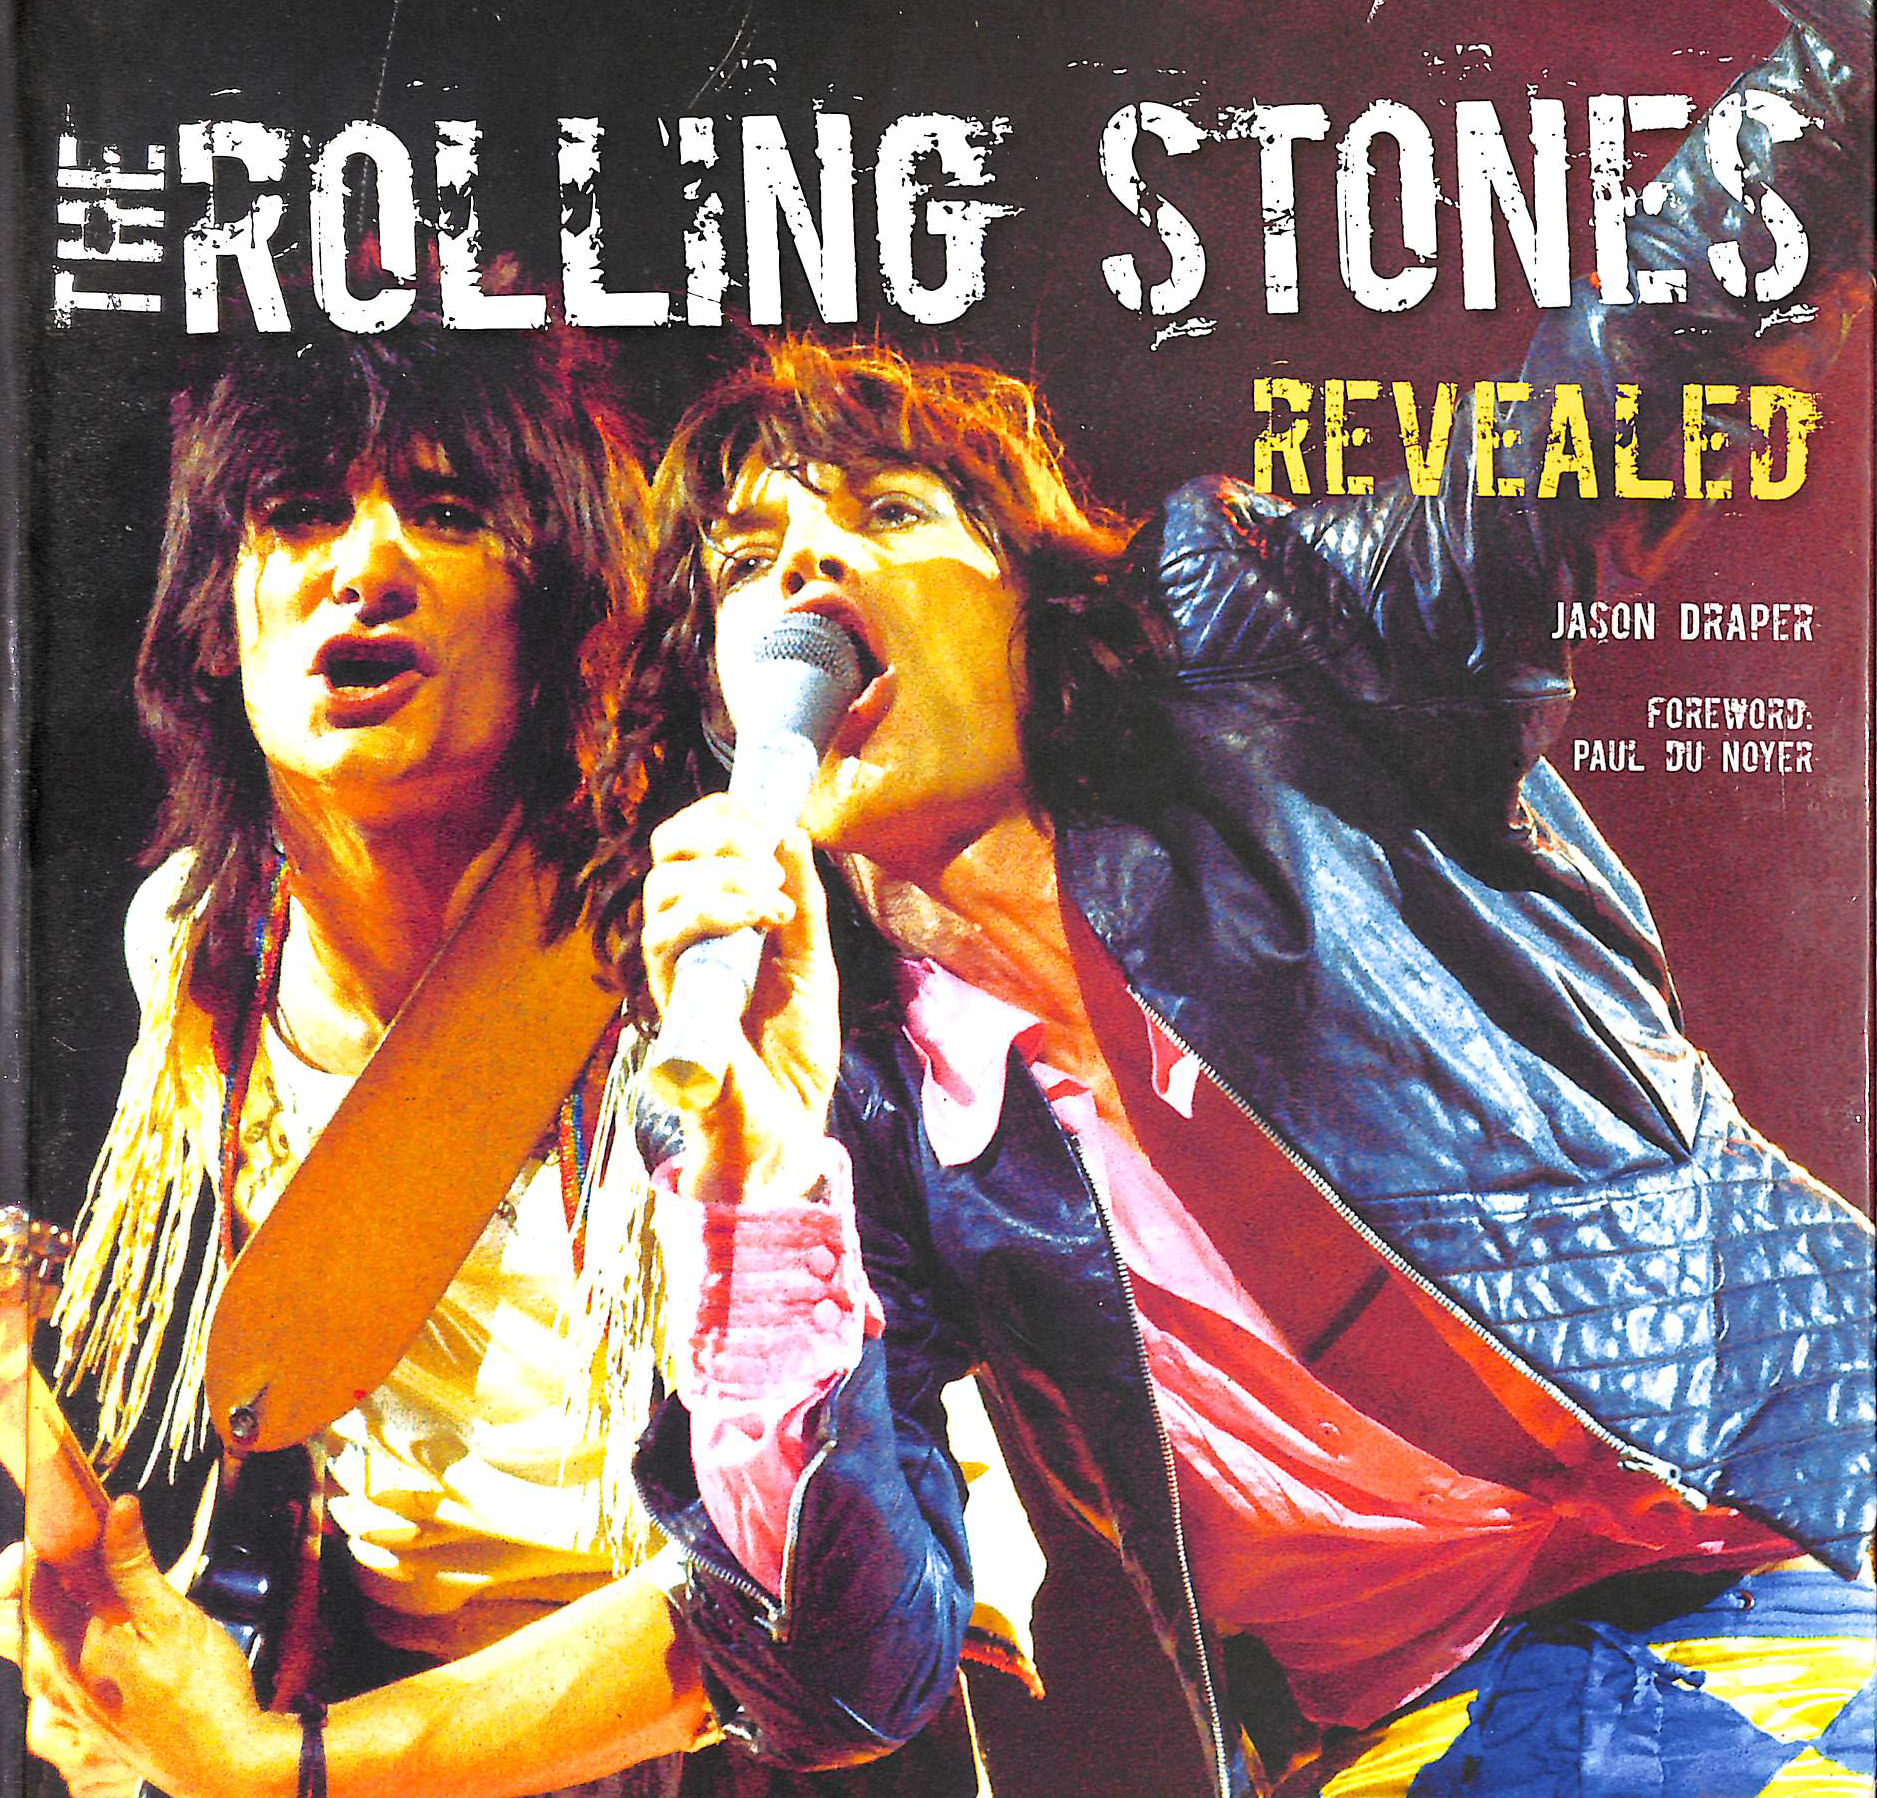 Image for Rolling Stones Revealed